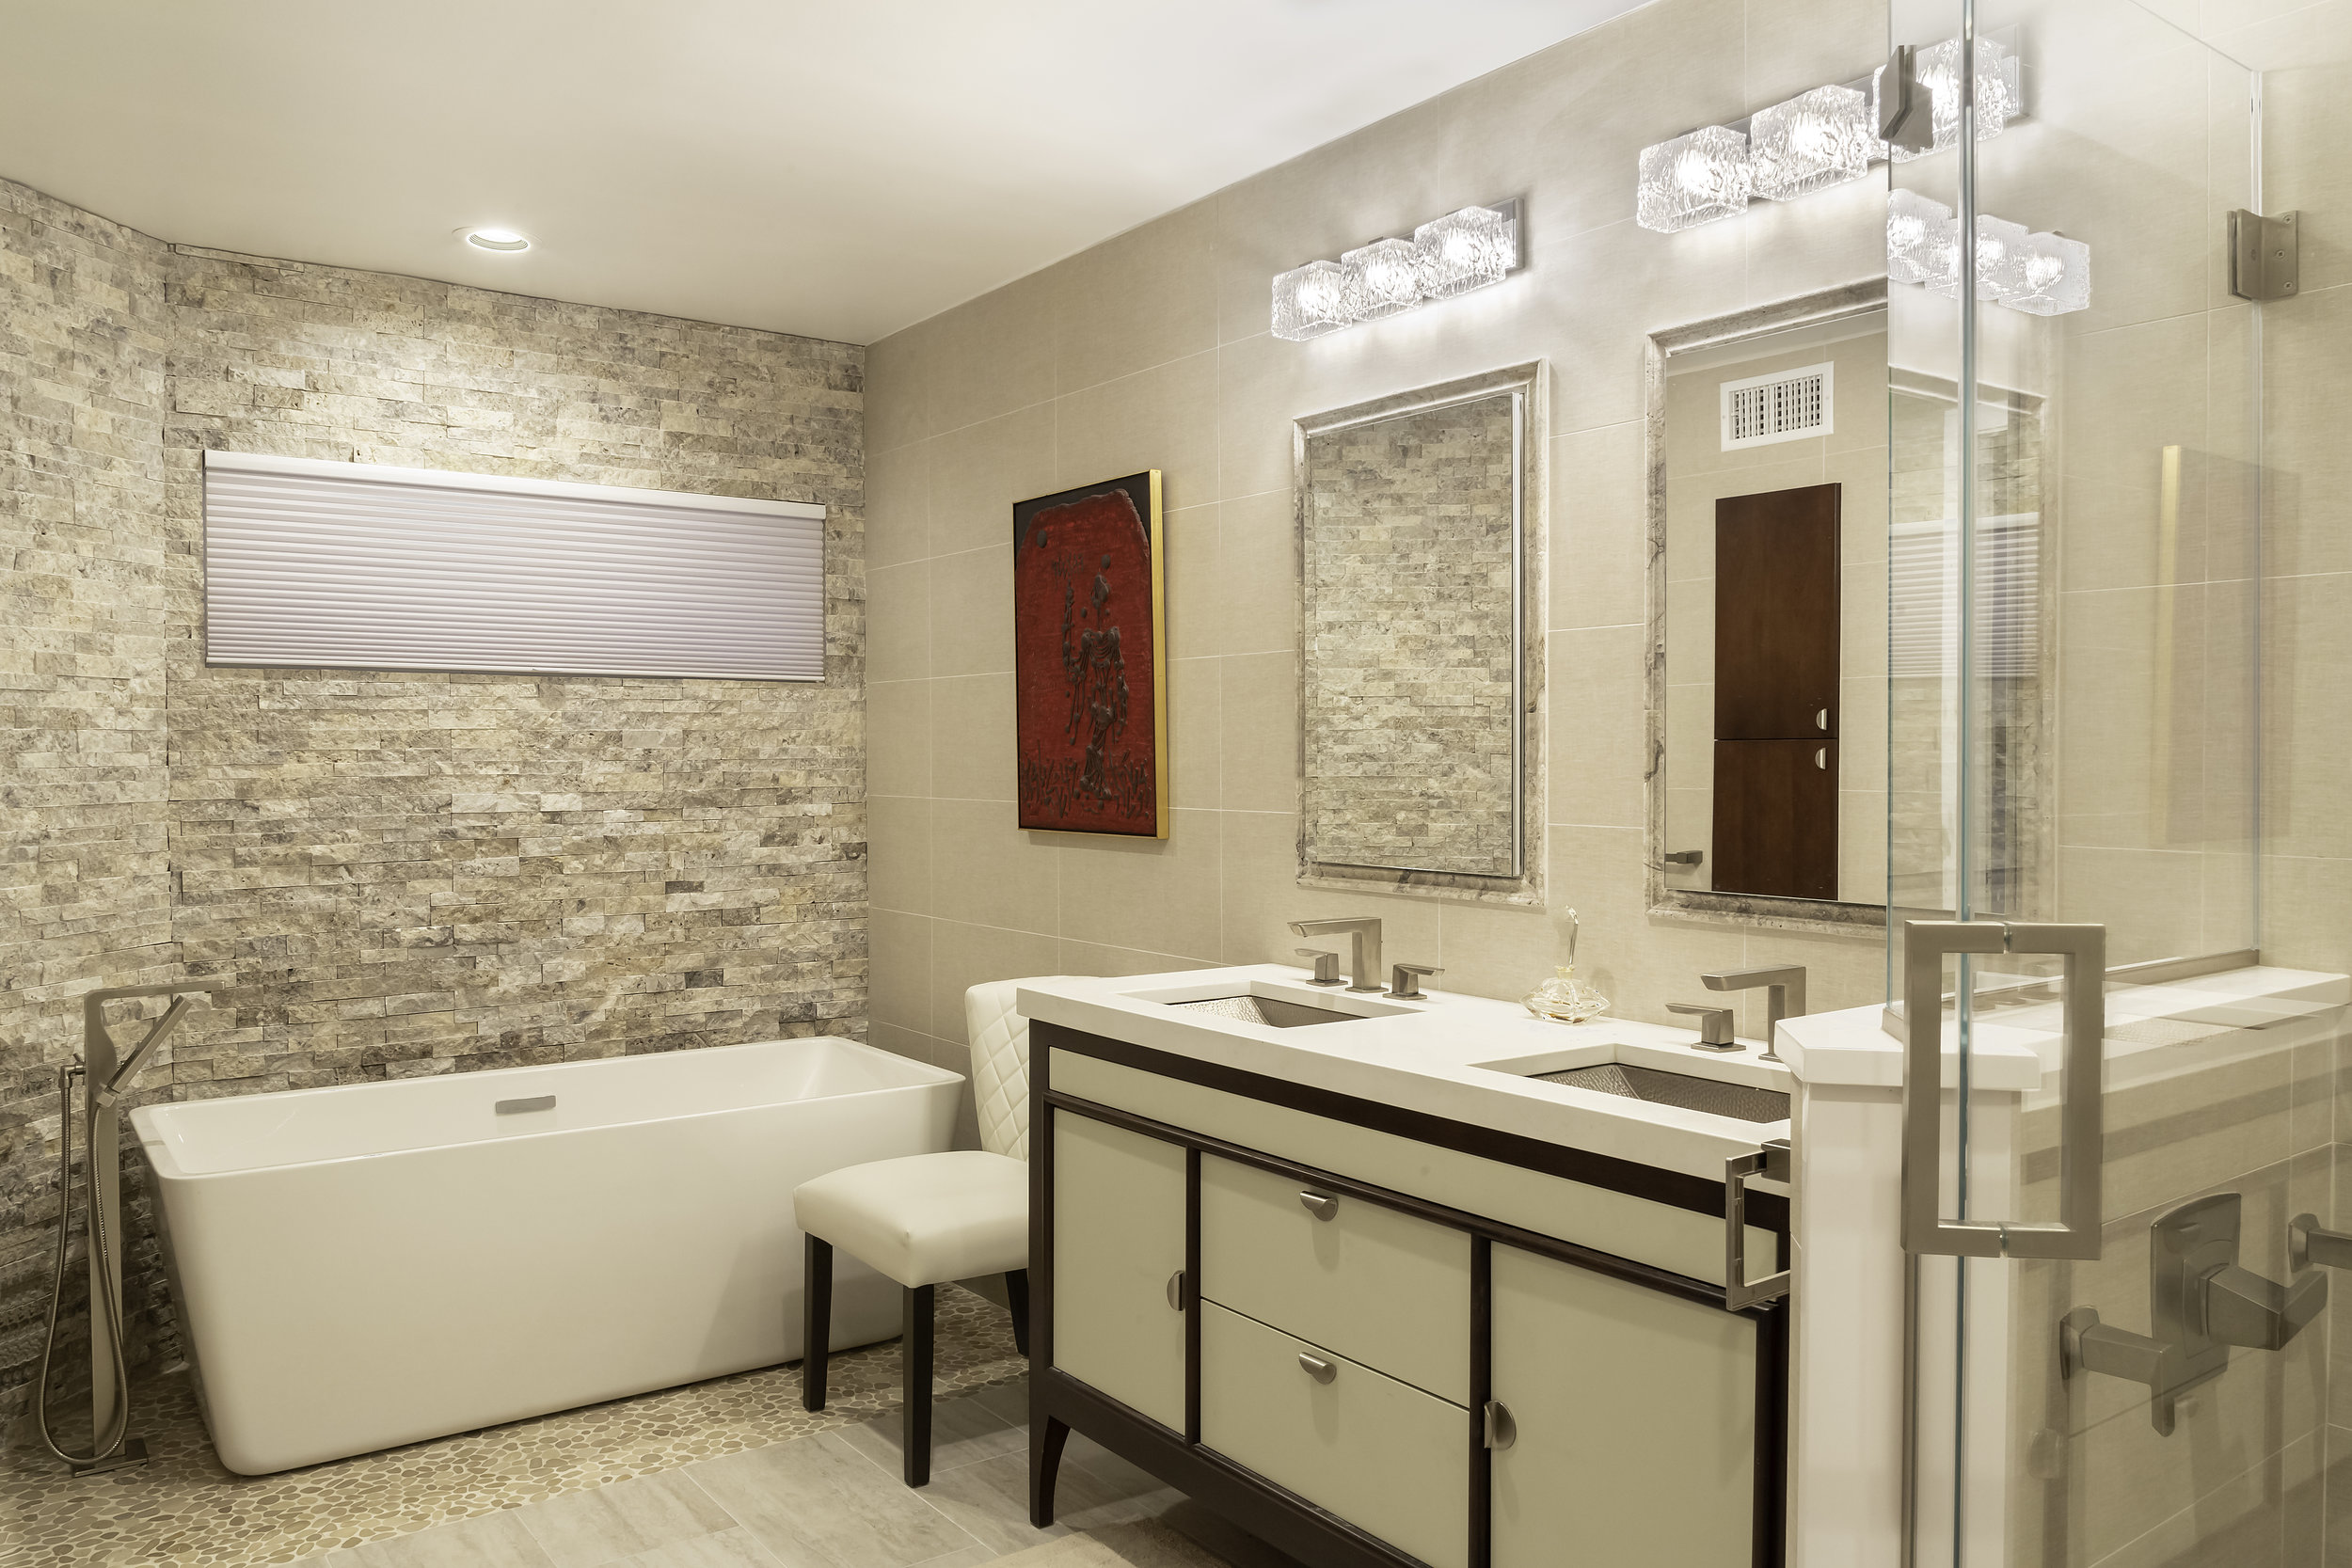 Cream colored bathroom with red painting hanging on wall